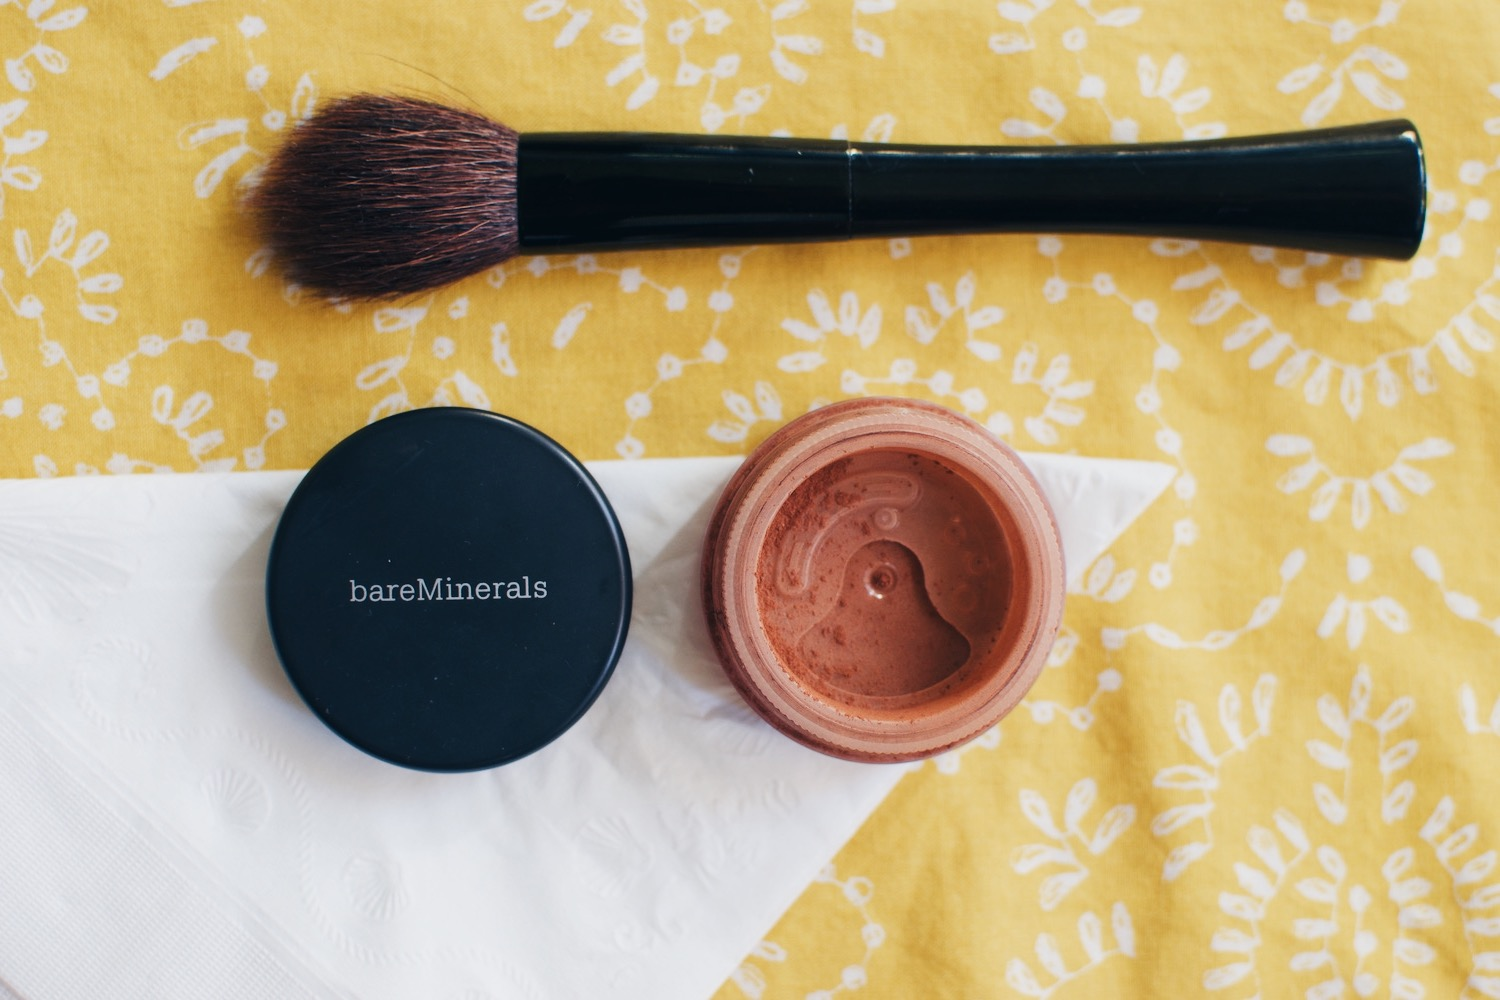 2. Face - For face makeup, I keep it extremely simple by dusting on this bronzer by Bare Minerals in the shade, warmth. I apply this to my cheeks, temples and the bridge of my nose.This product gives my skin a lovely sun-kissed look.